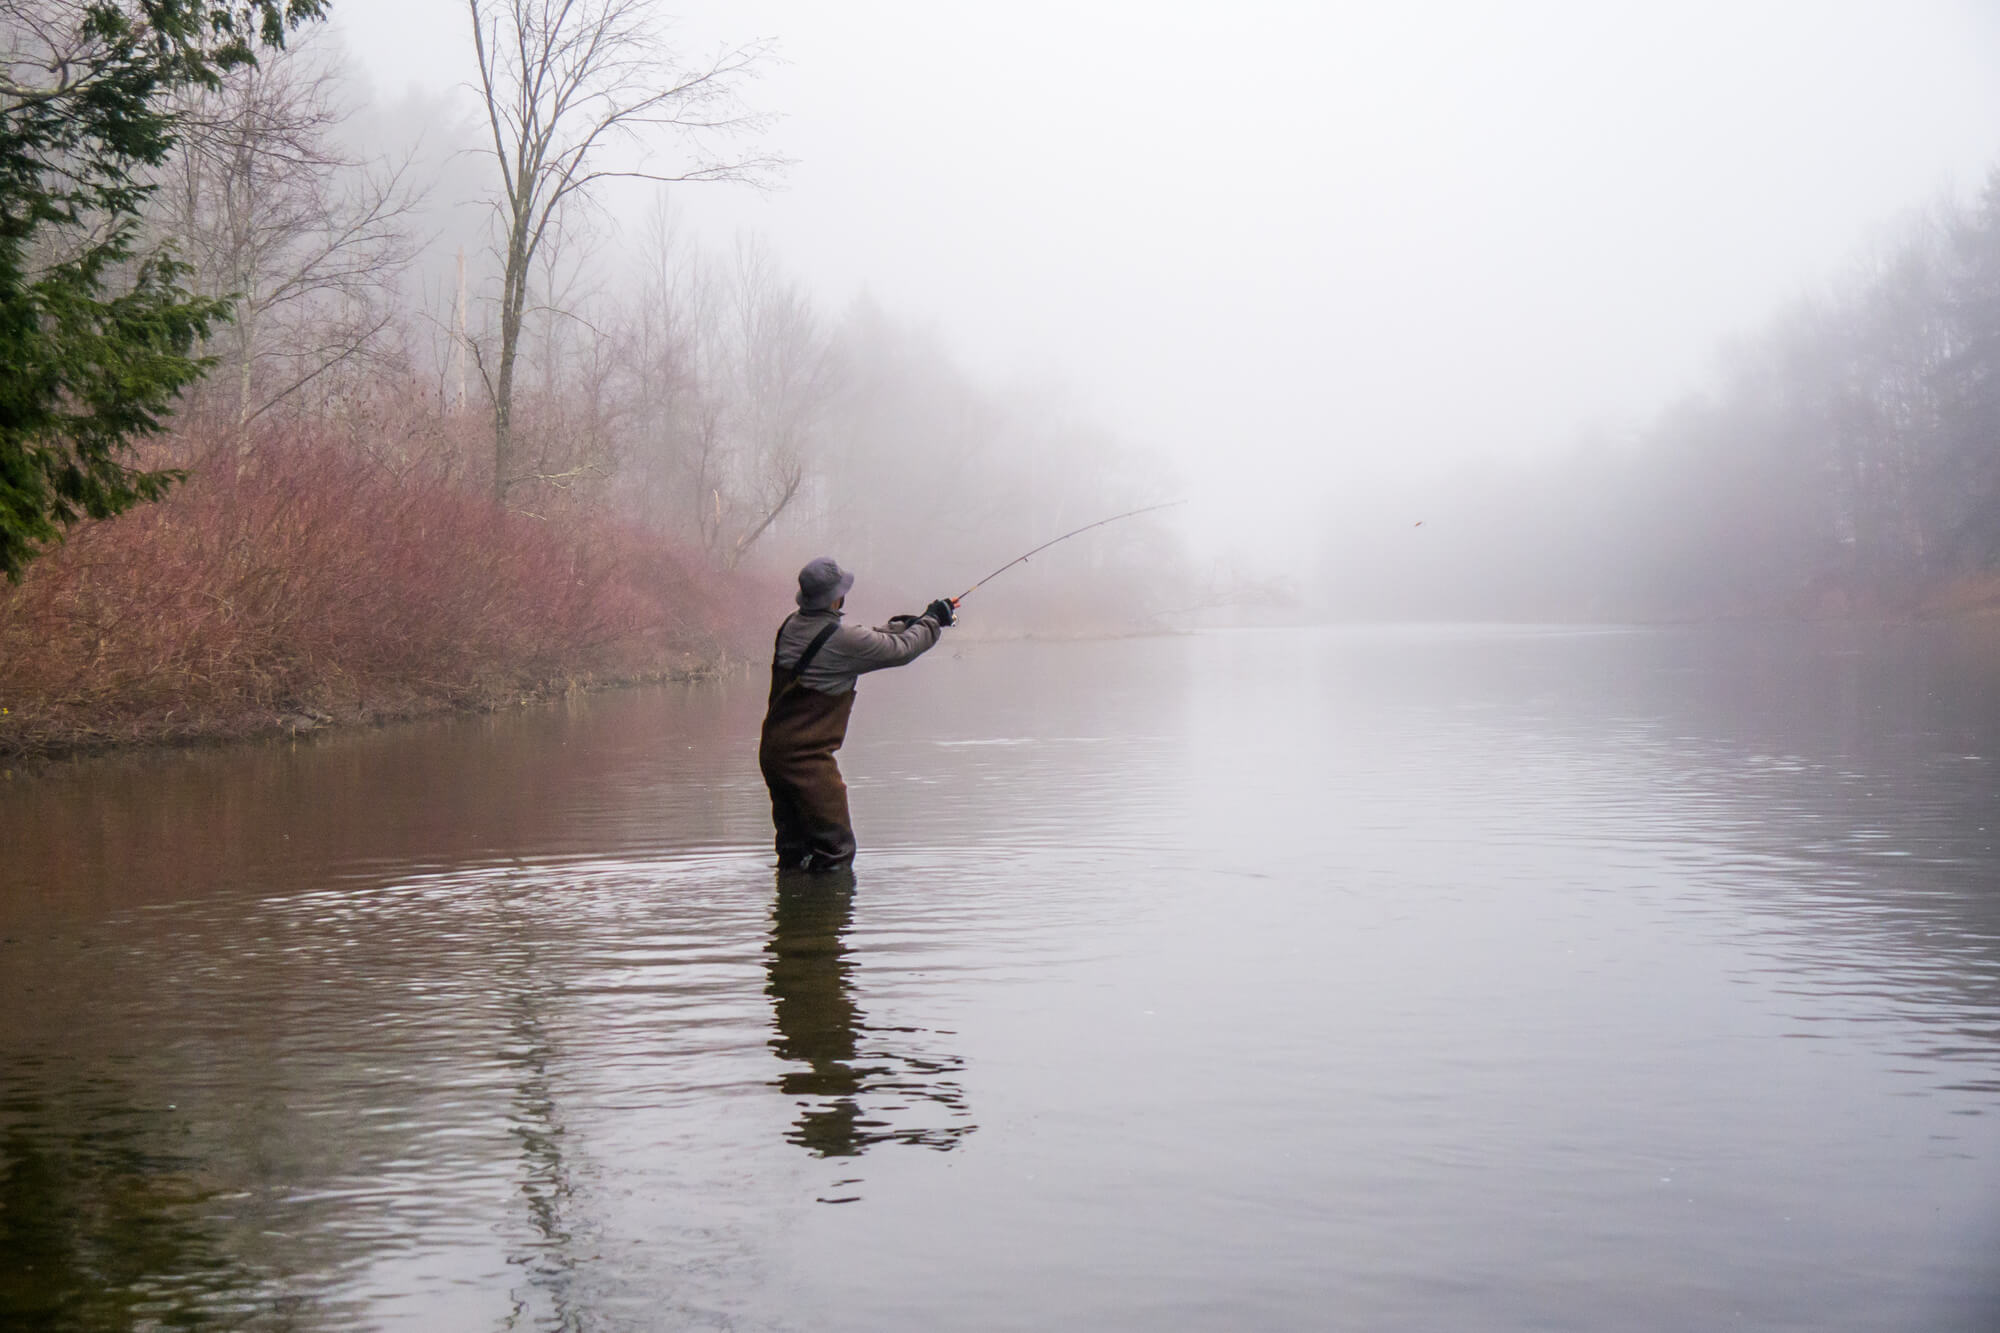 Man fishing with waders on